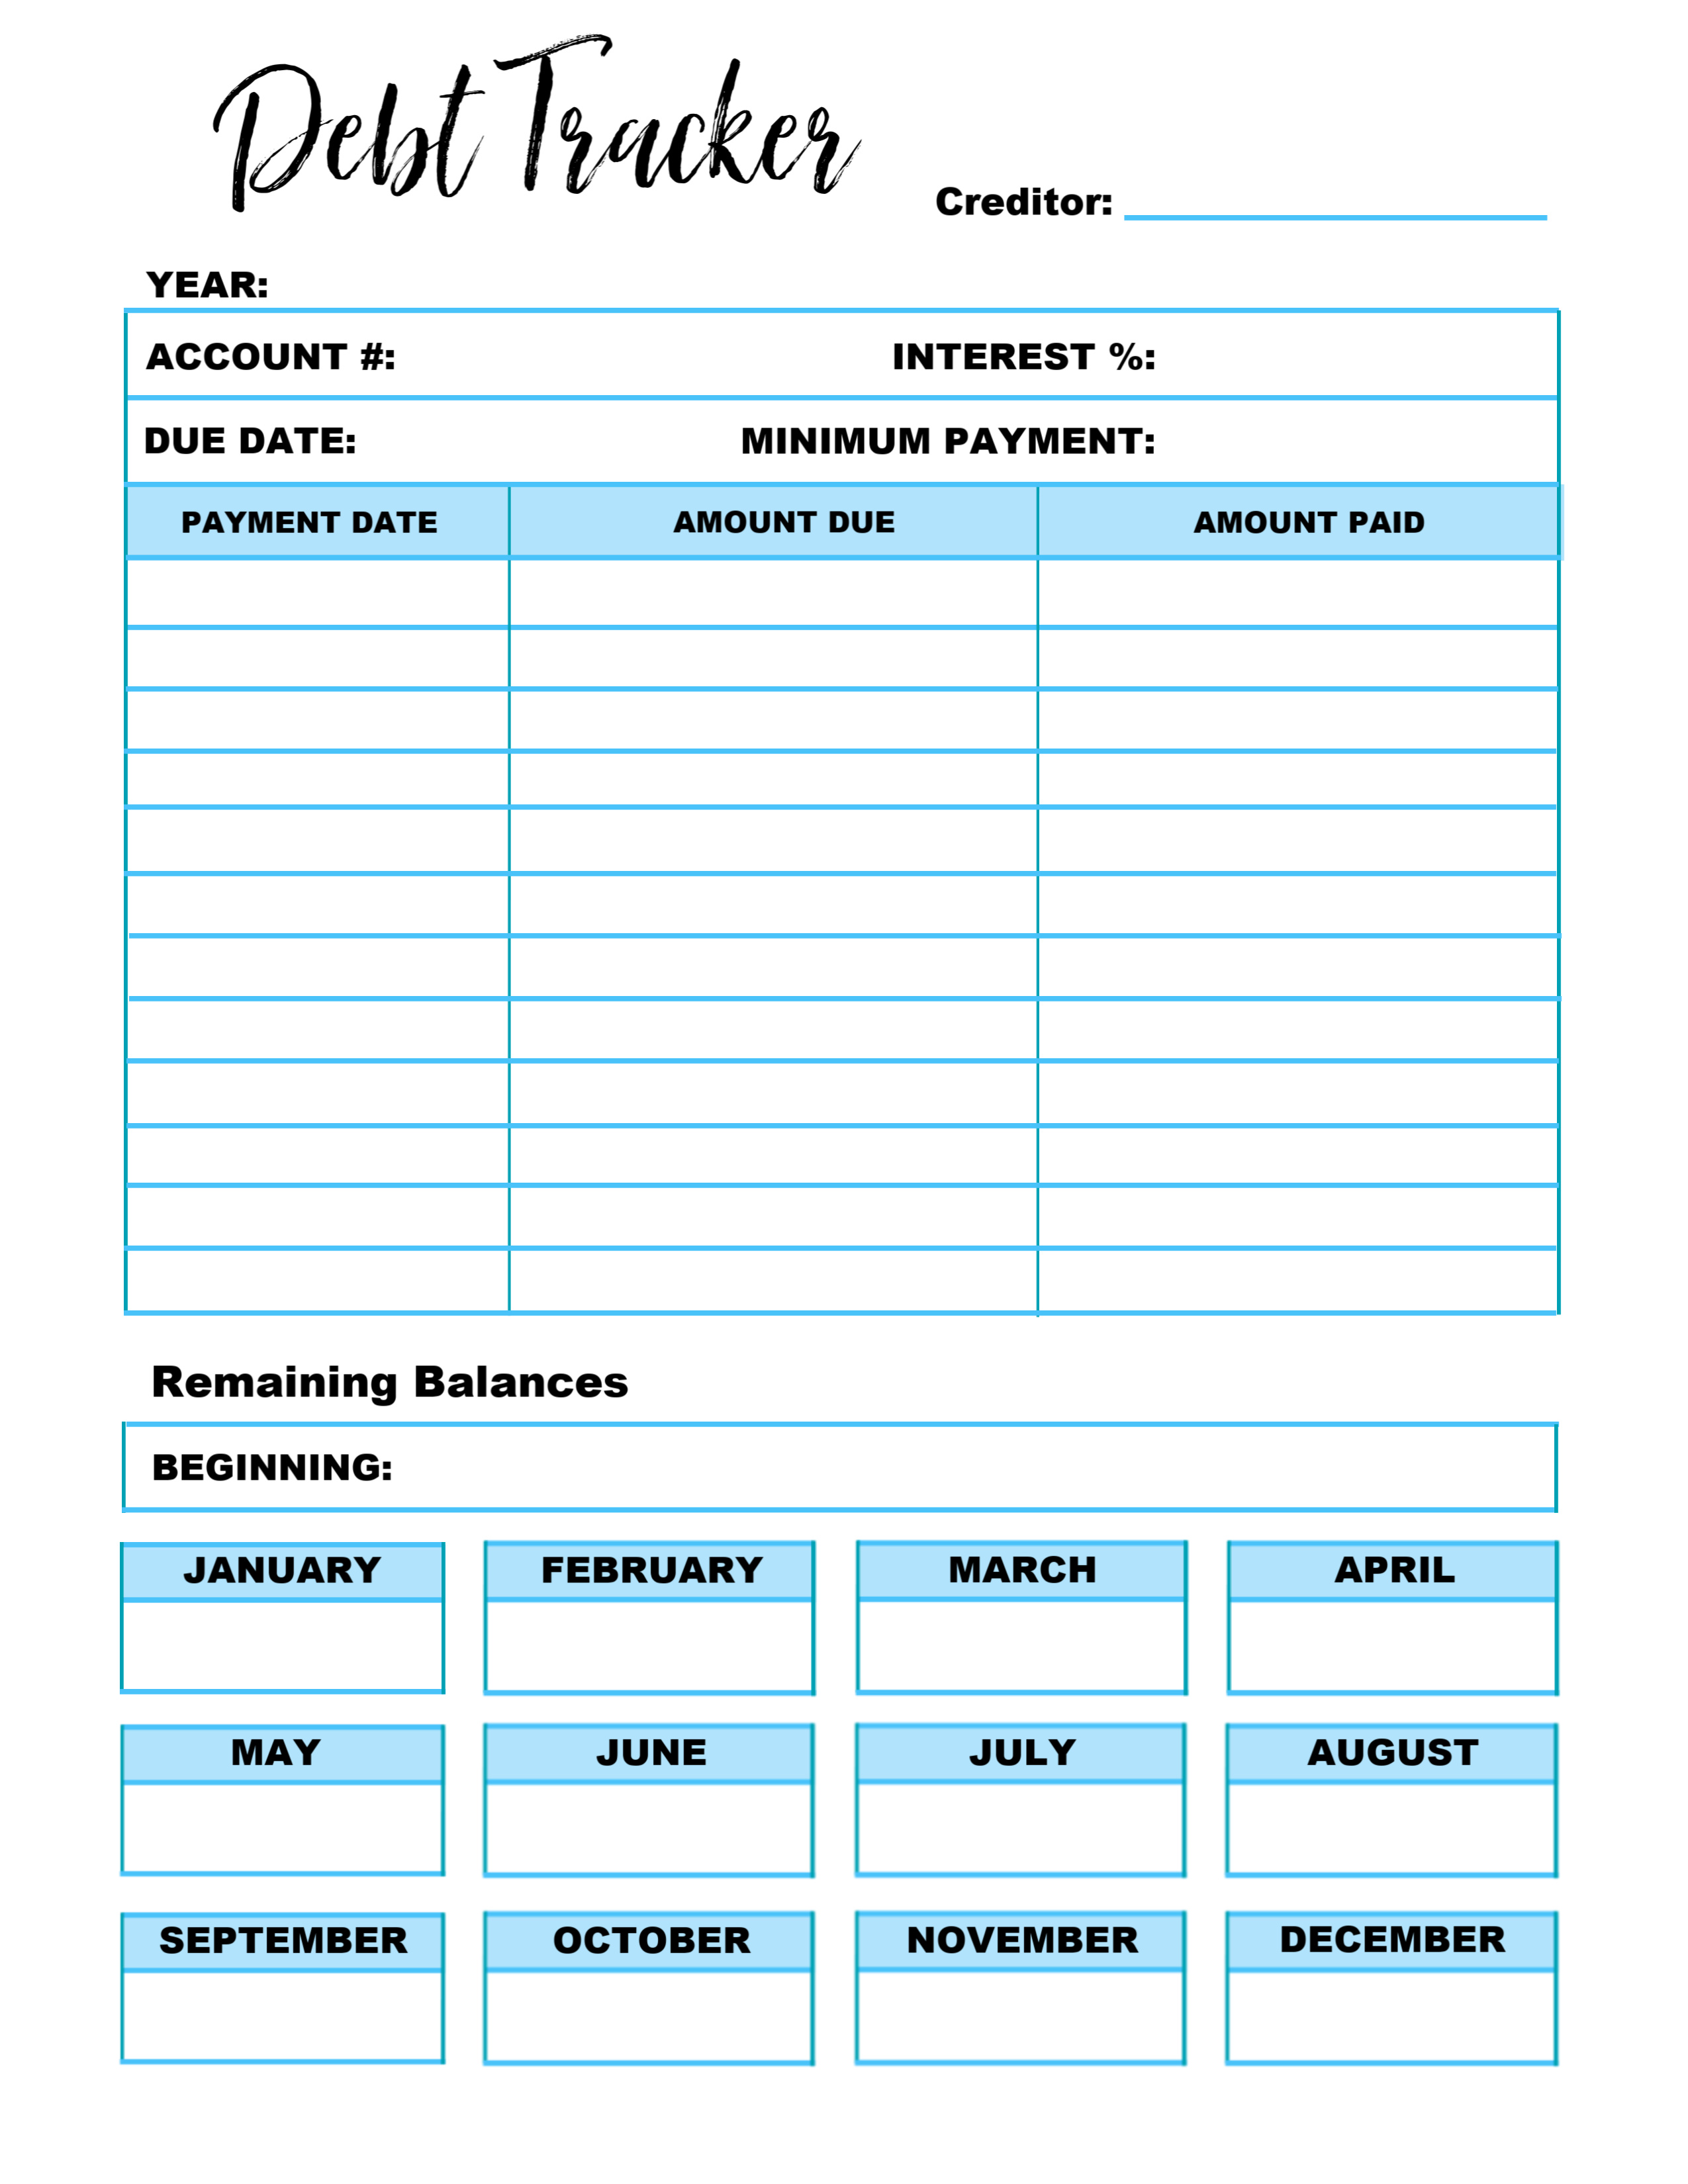 photo about Debt Tracker Printable named Price range Printable Collection - Personal debt Tracker ~ The Frugal Sisters